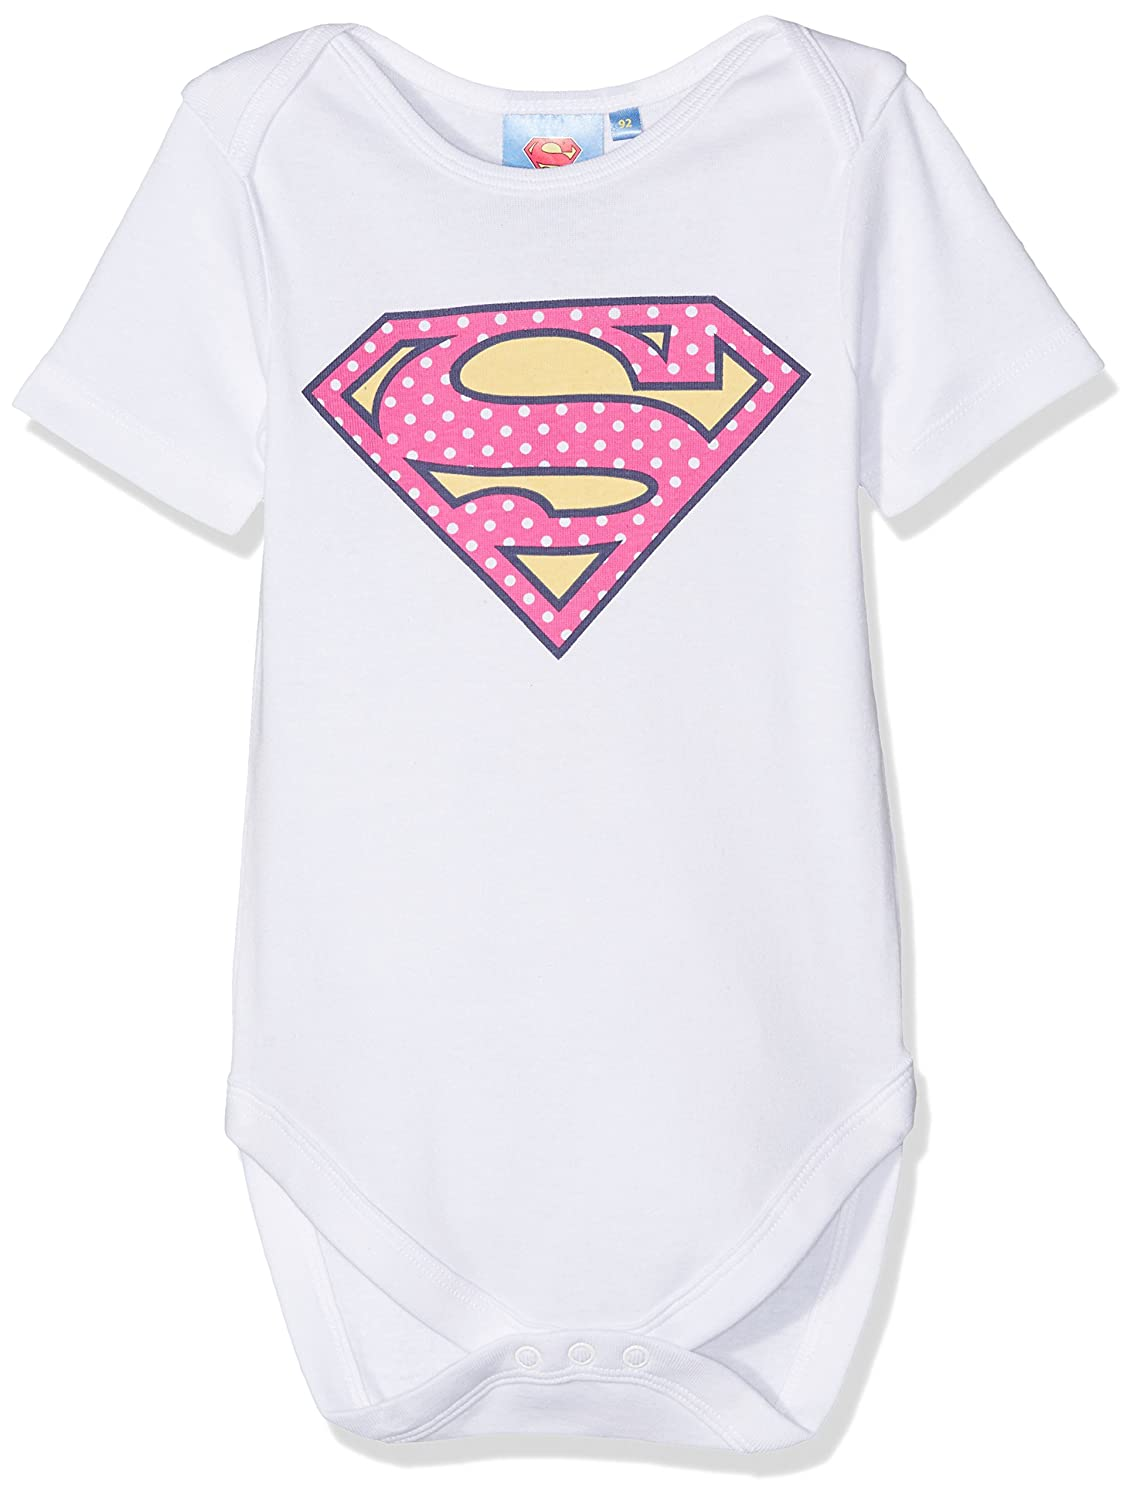 Twins Supergirl 1 011 41, Body Bimba, Bianco, 24 mesi Julius Hüpeden GmbH